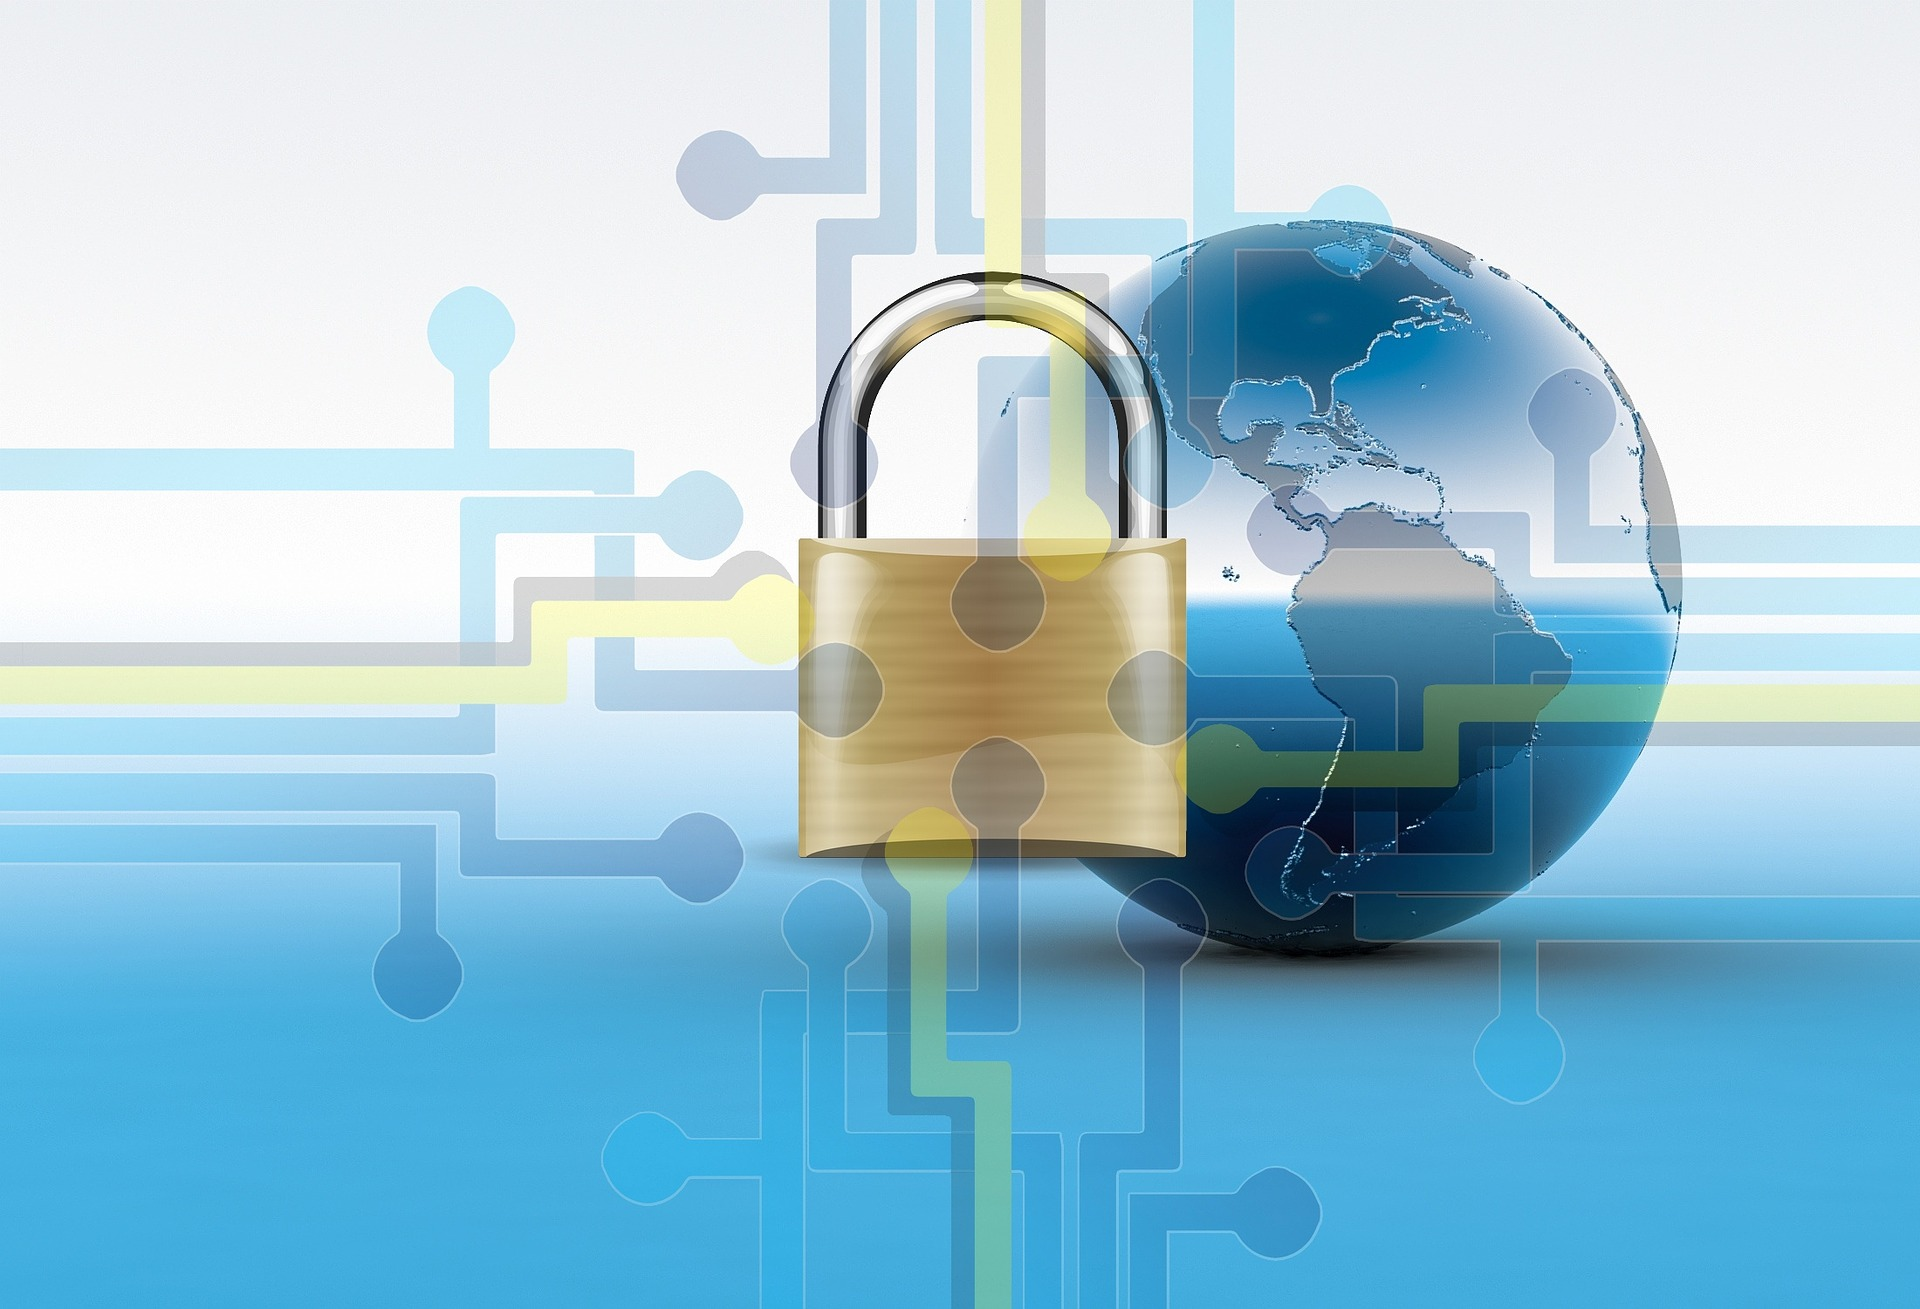 padlock with interconnected lines and a globe in the background